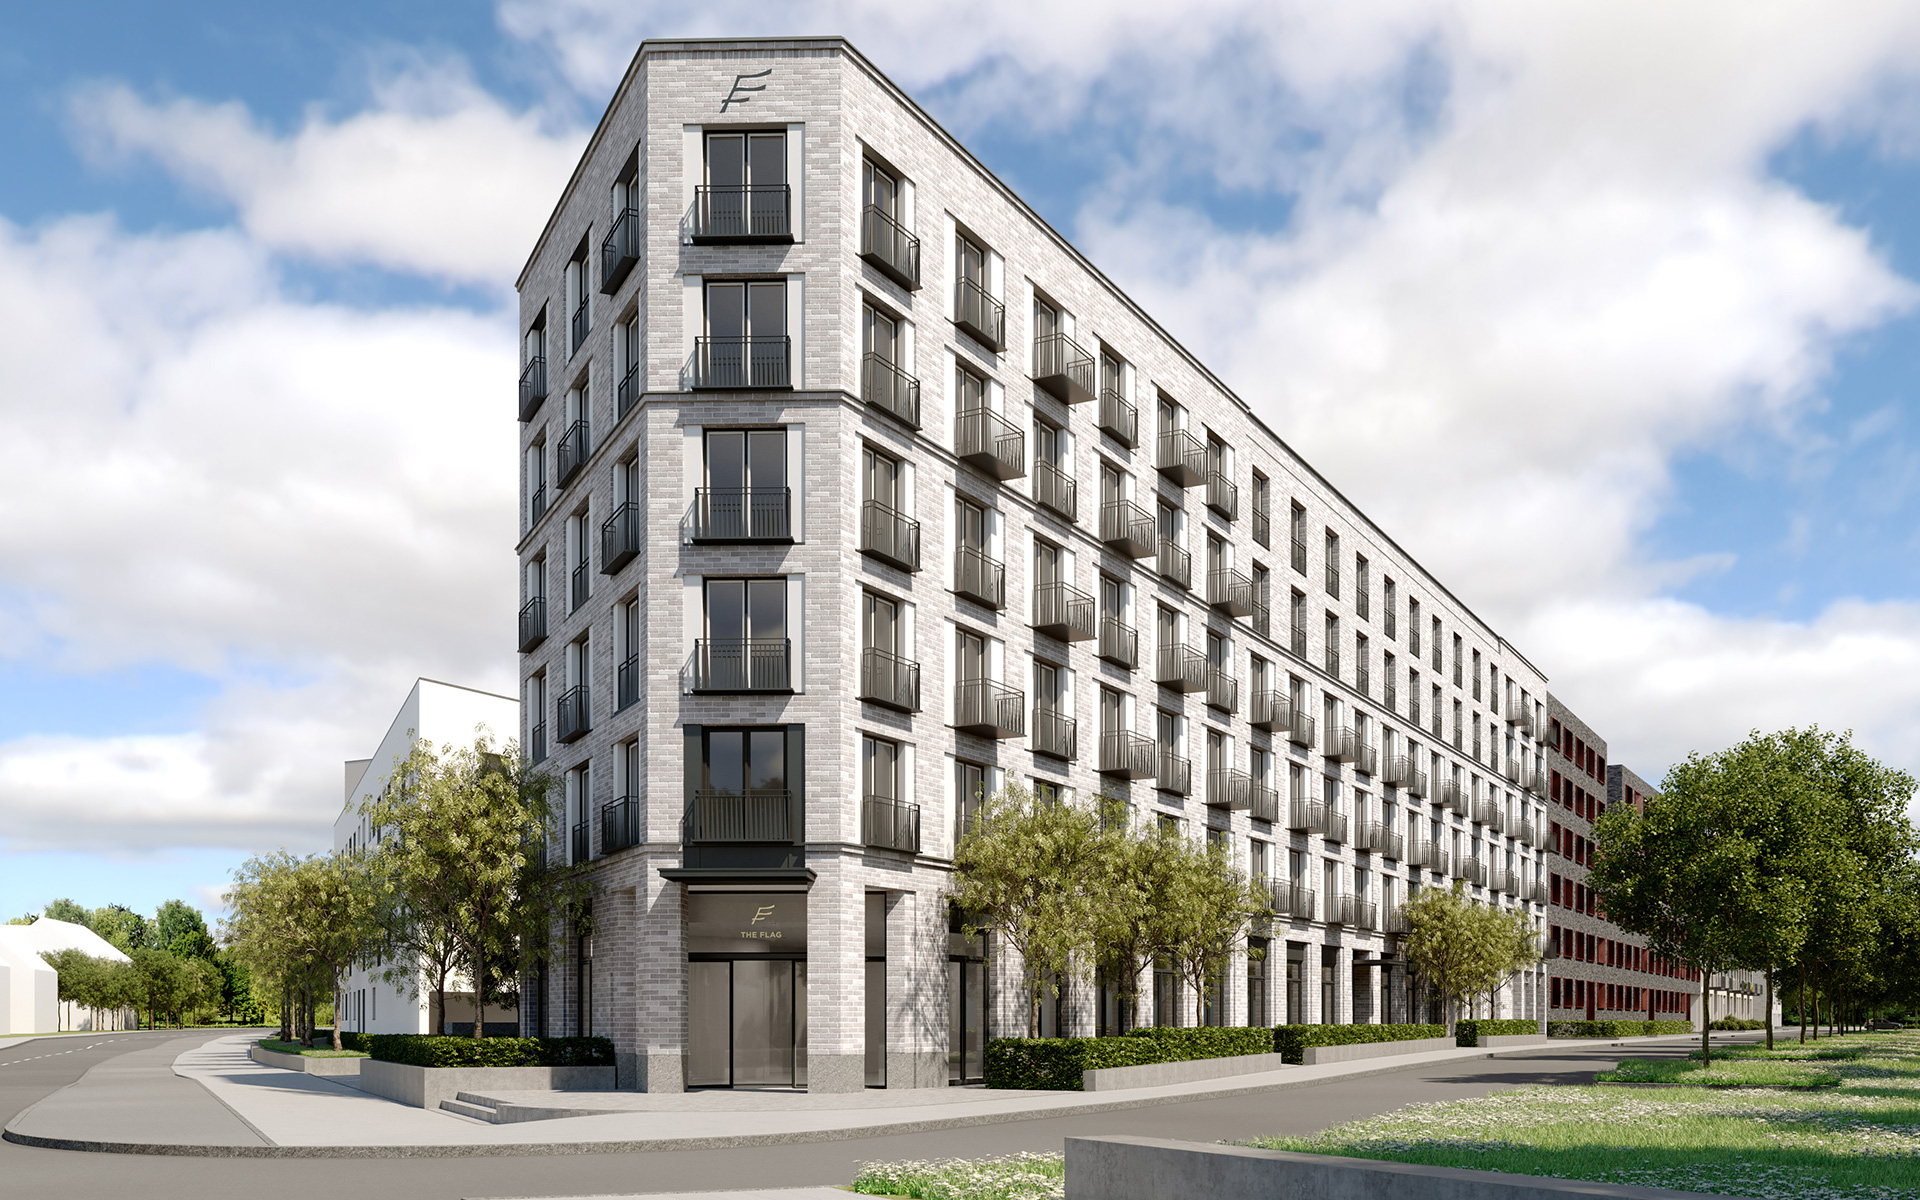 The trustful cooperation with Rathgeber AG in the Meiller Gärten development area in Munich-Moosach enters its 3rd round. After the work on construction sites 06 and 07, S. Pöttinger Bauunternehmung was commissioned with the general contractor work for th